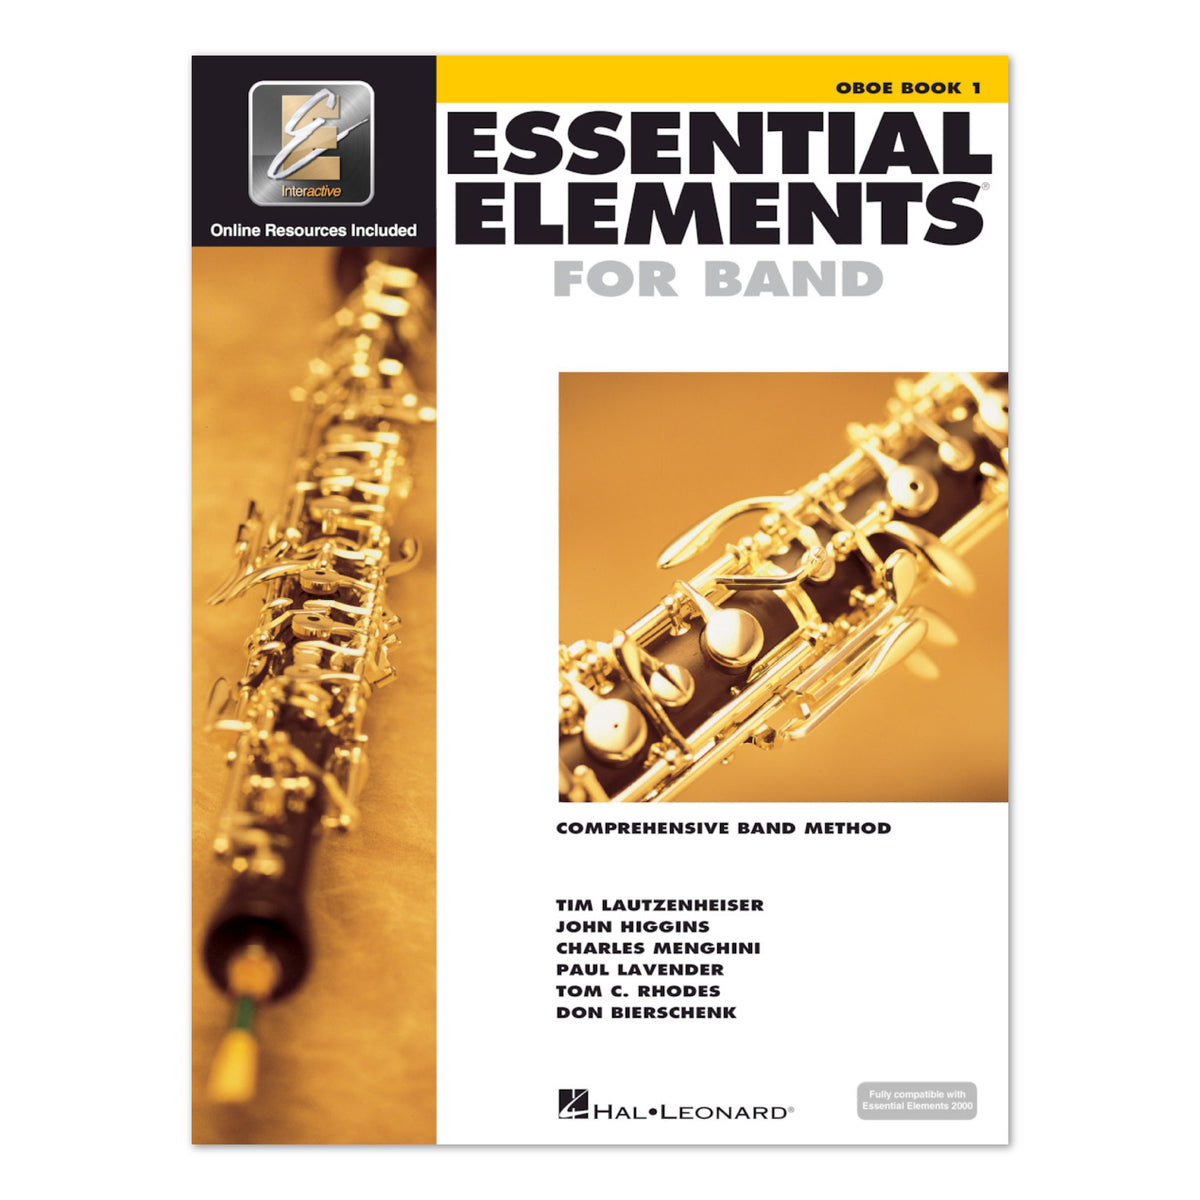 Hal Leonard Essential Elements for Band - Oboe - Book 1